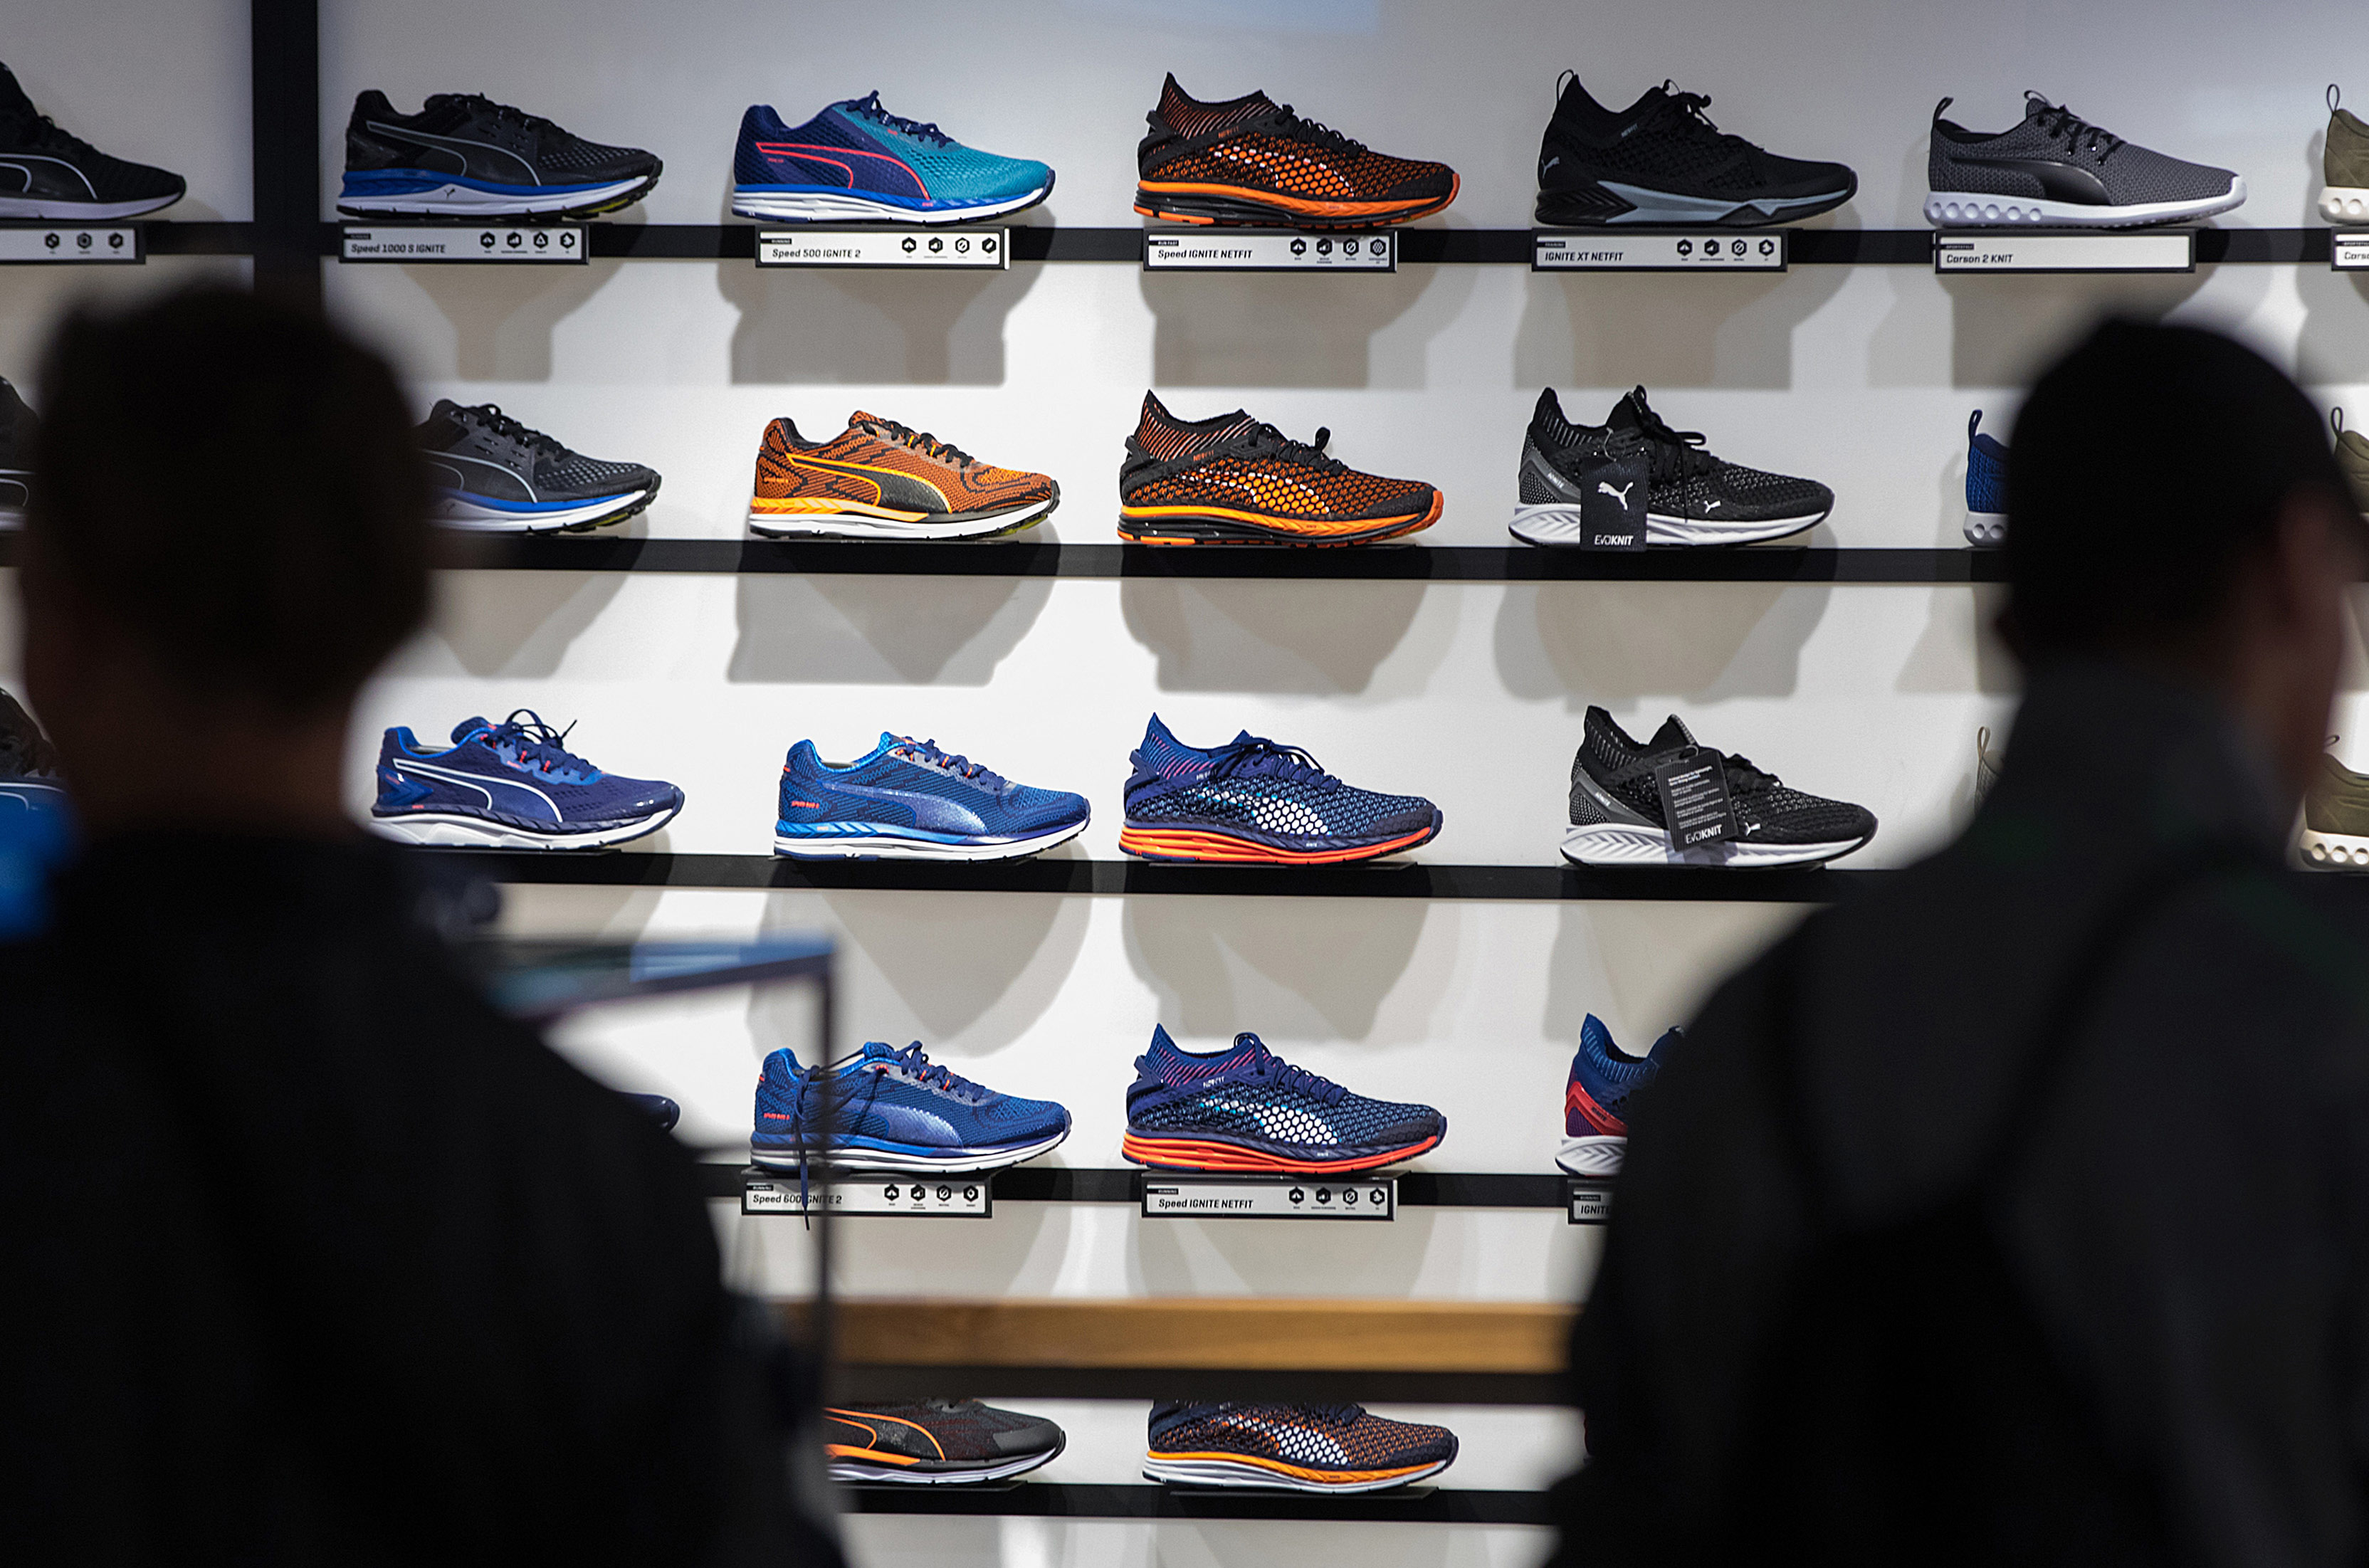 4861d7c54a3 These Shoes Don t Fit  Gucci Parent Returns Puma to Shareholders - Bloomberg